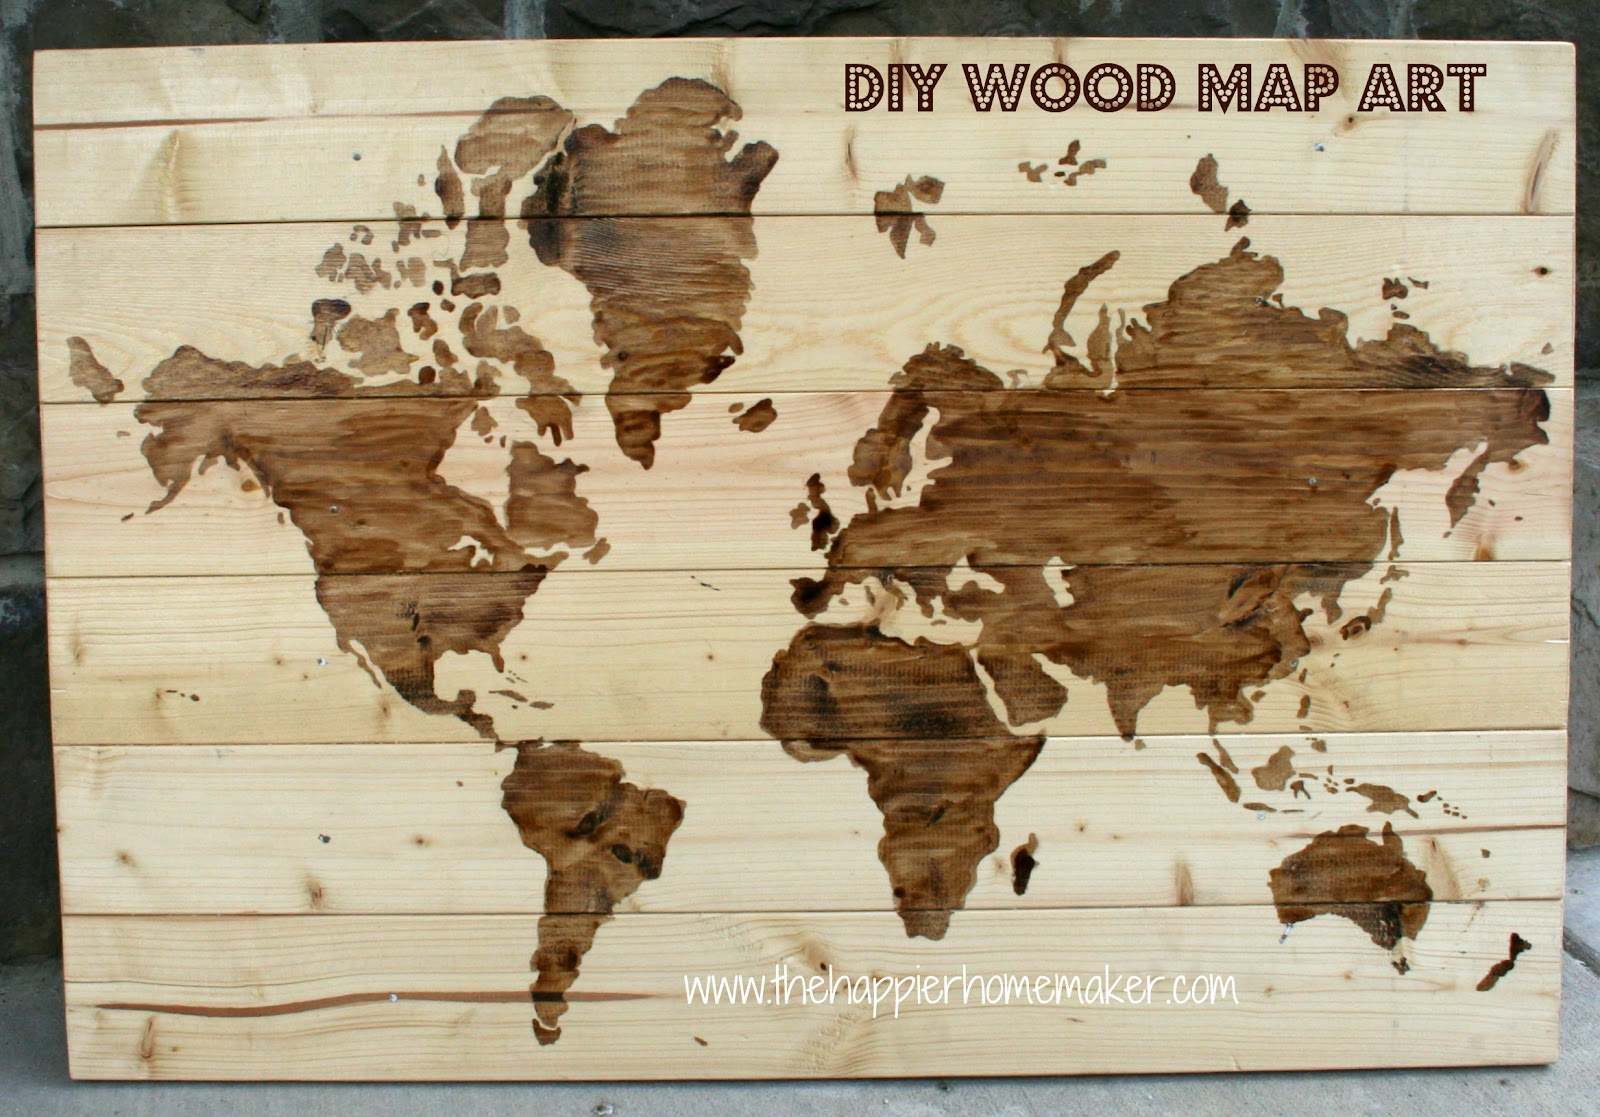 Diy wooden world map art the happier homemaker gumiabroncs